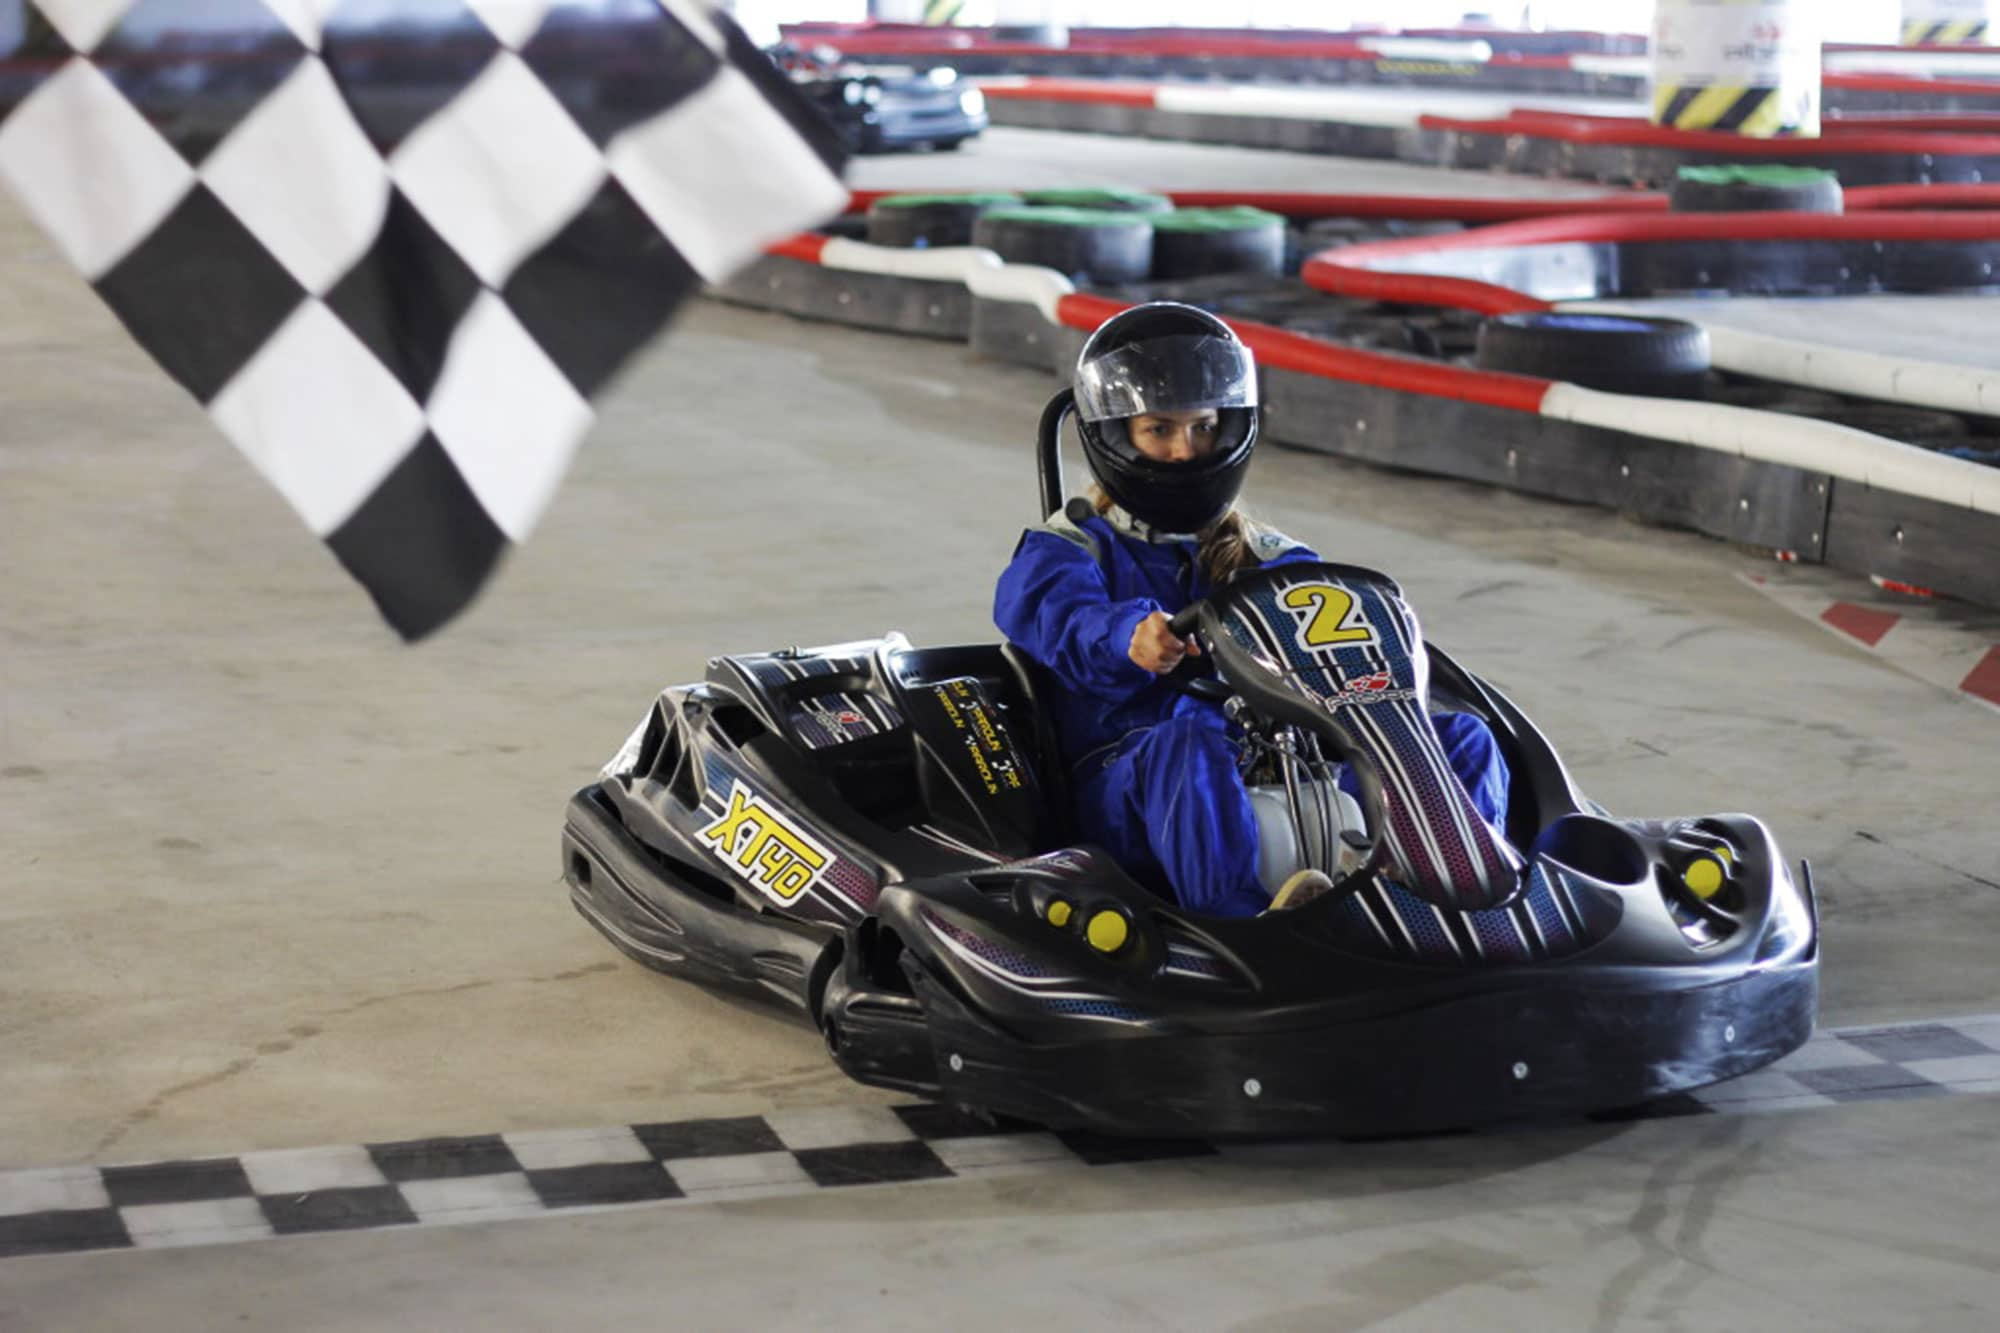 Finish first to win the special prize at the go kart track in Gdansk